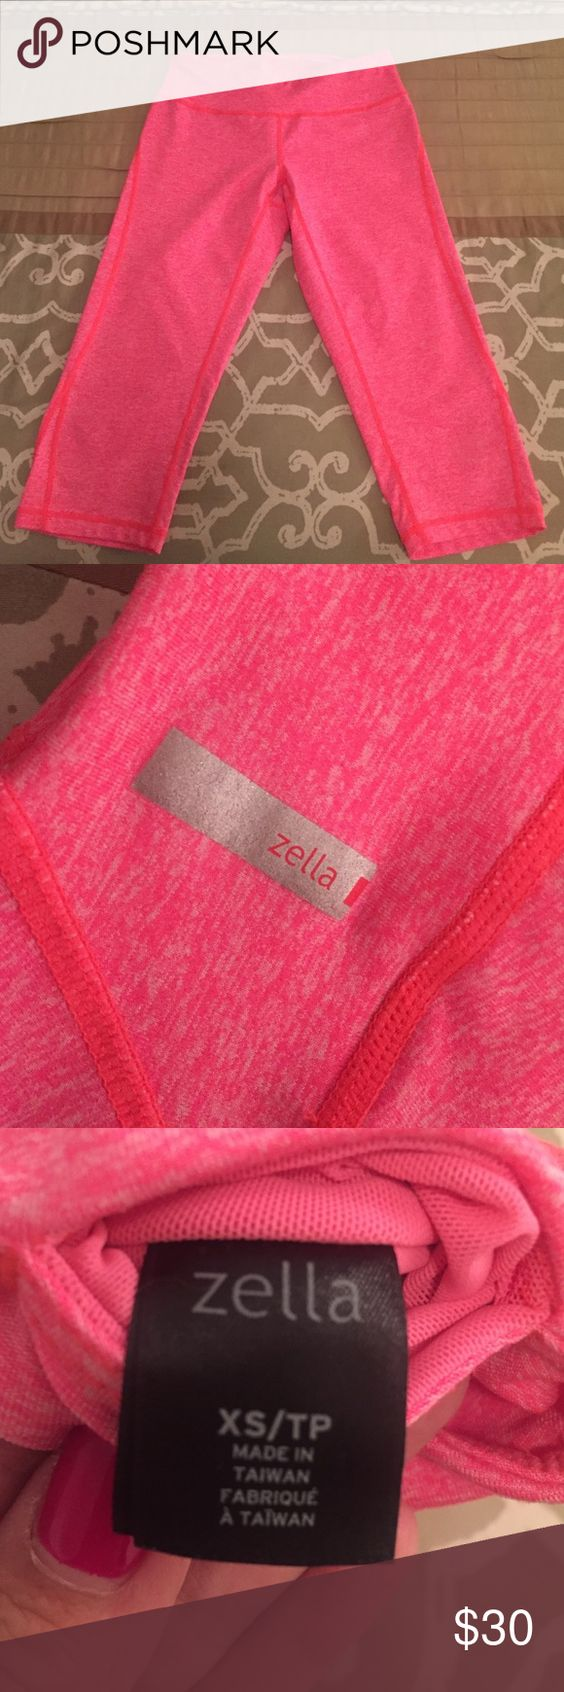 """ZELLA Live In Capris Zella """"Live In"""" capris, bright heathered coral, size XS from Nordstrom. Excellent condition - no rips, stains or tears. Comfy and great for working out :) Zella Pants Capris"""